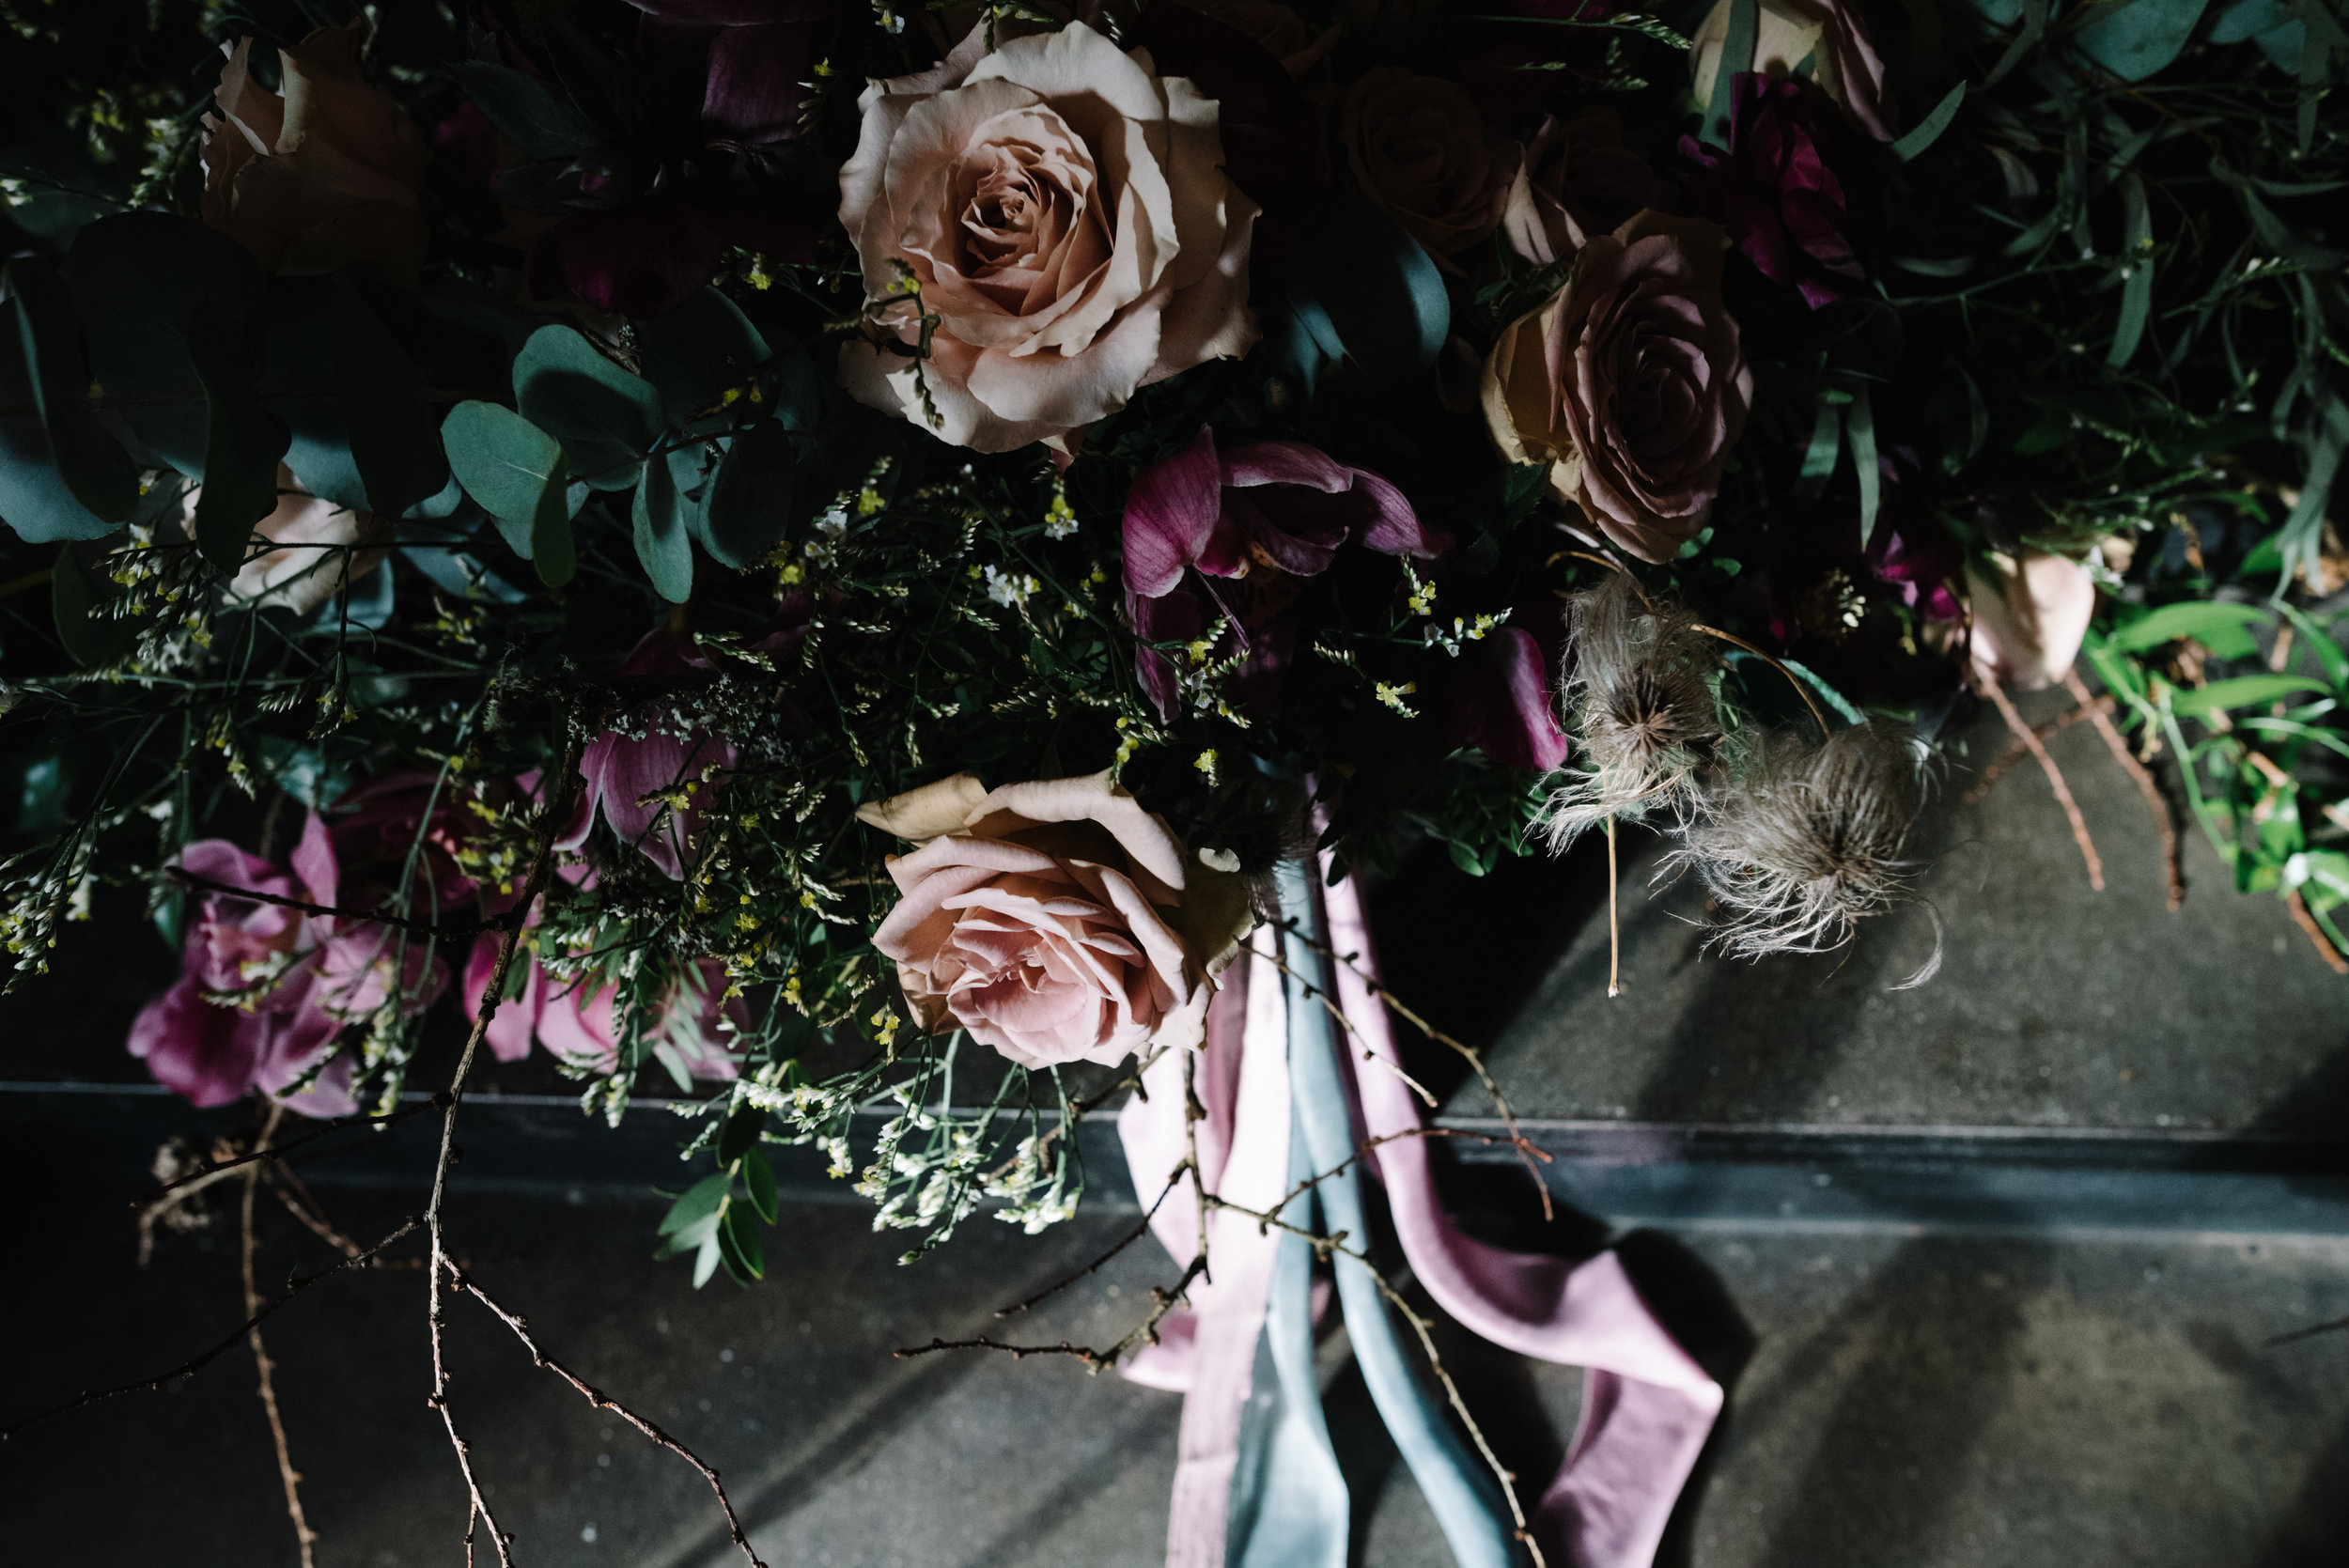 Modern Wedding Inspiration Shoot in Glasgow Brewery With a Frill Installation, Candy Floss and Neon 00108.jpg